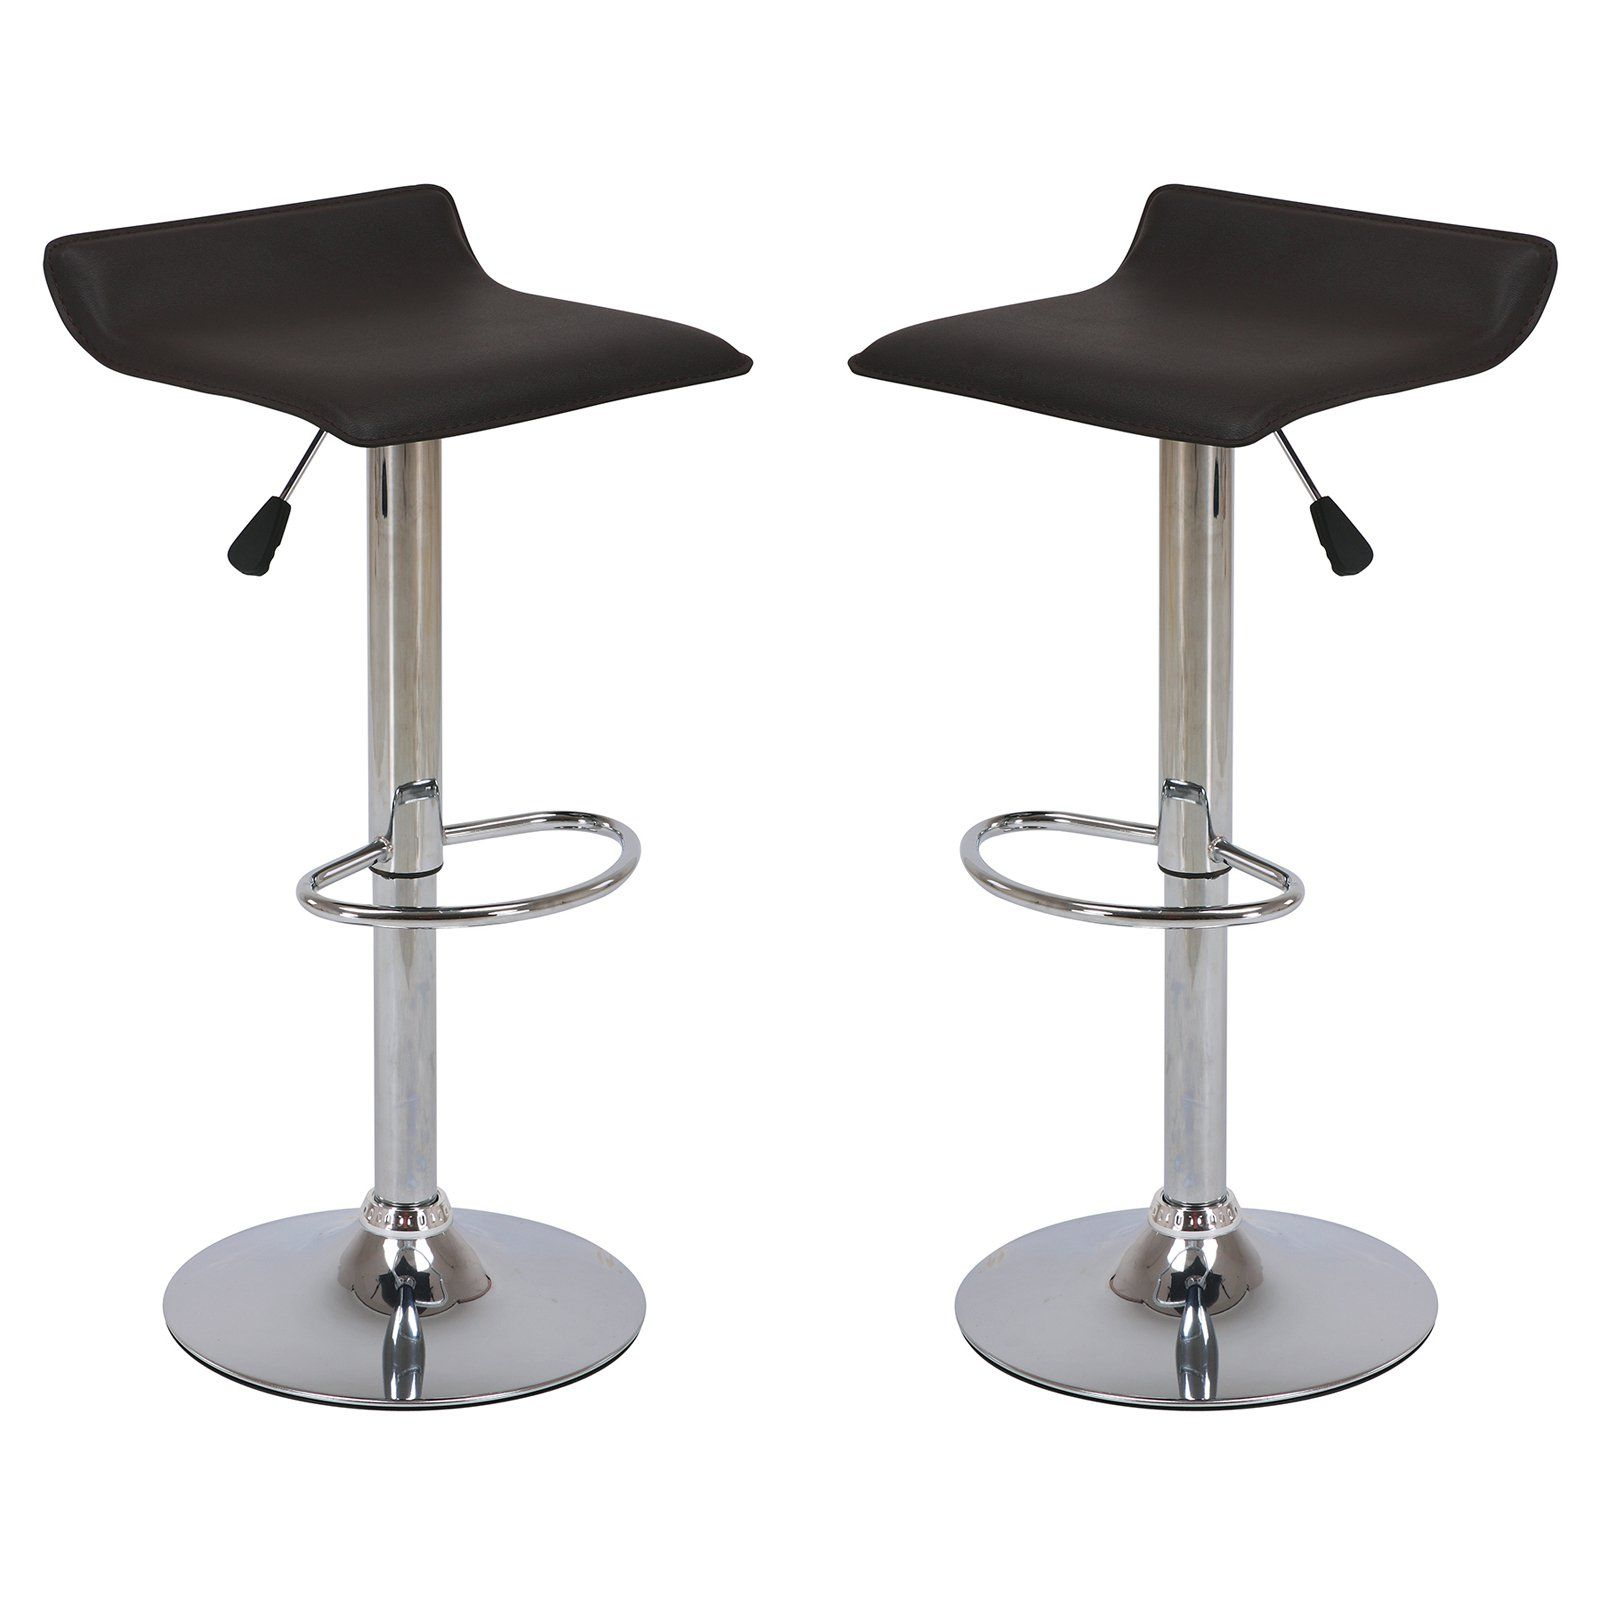 Astounding Vogue Furniture Direct Adjustable Height Backless Bar Stool Squirreltailoven Fun Painted Chair Ideas Images Squirreltailovenorg